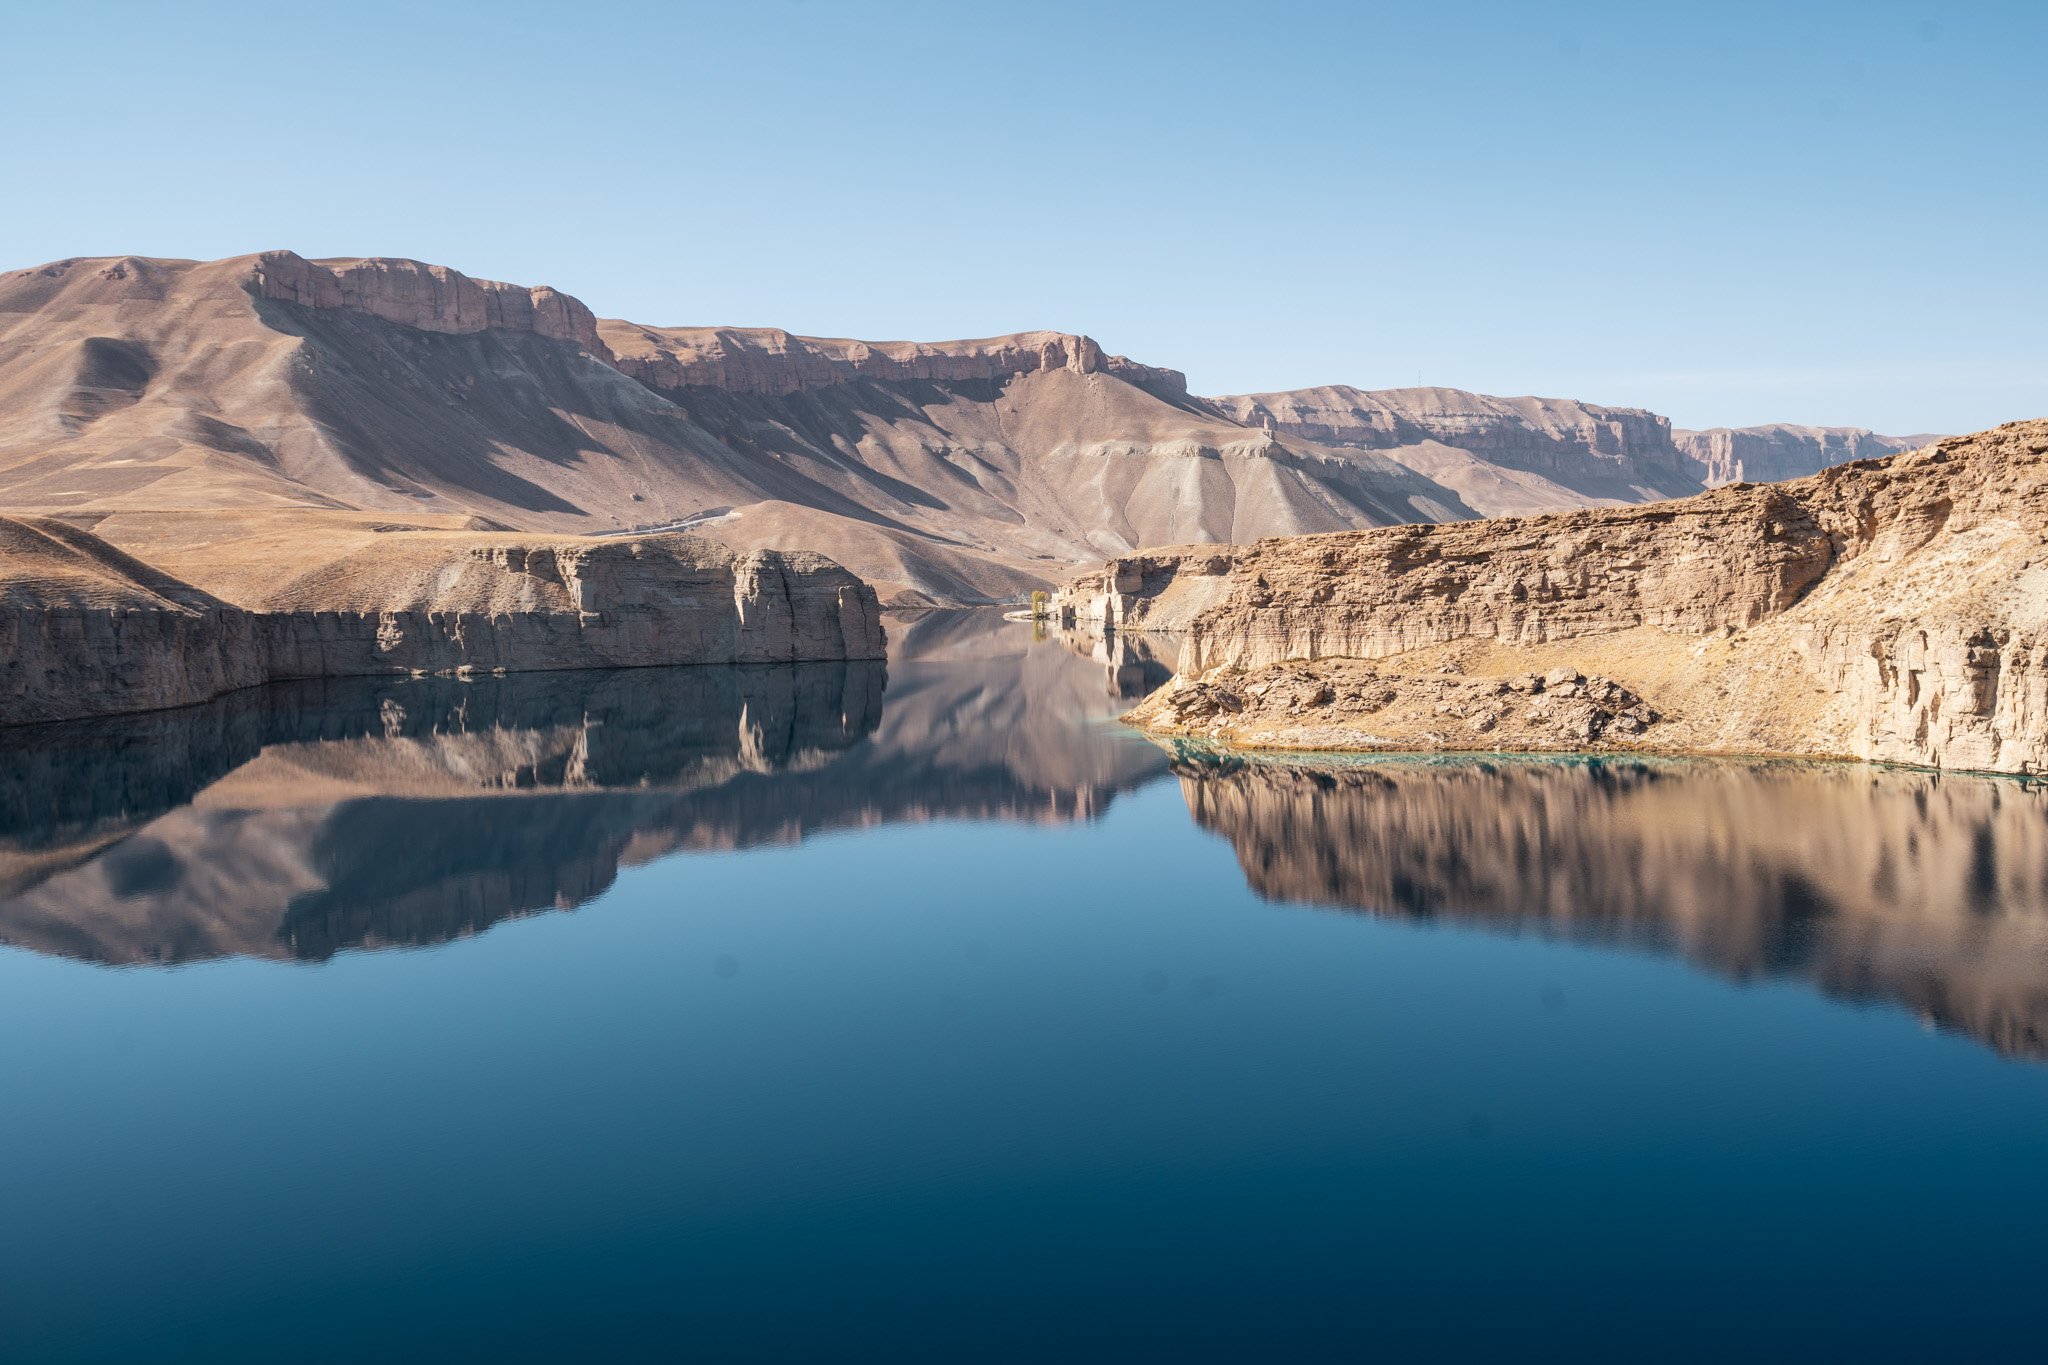 One of the insanely blue lakes in Band-e-Amir National Park